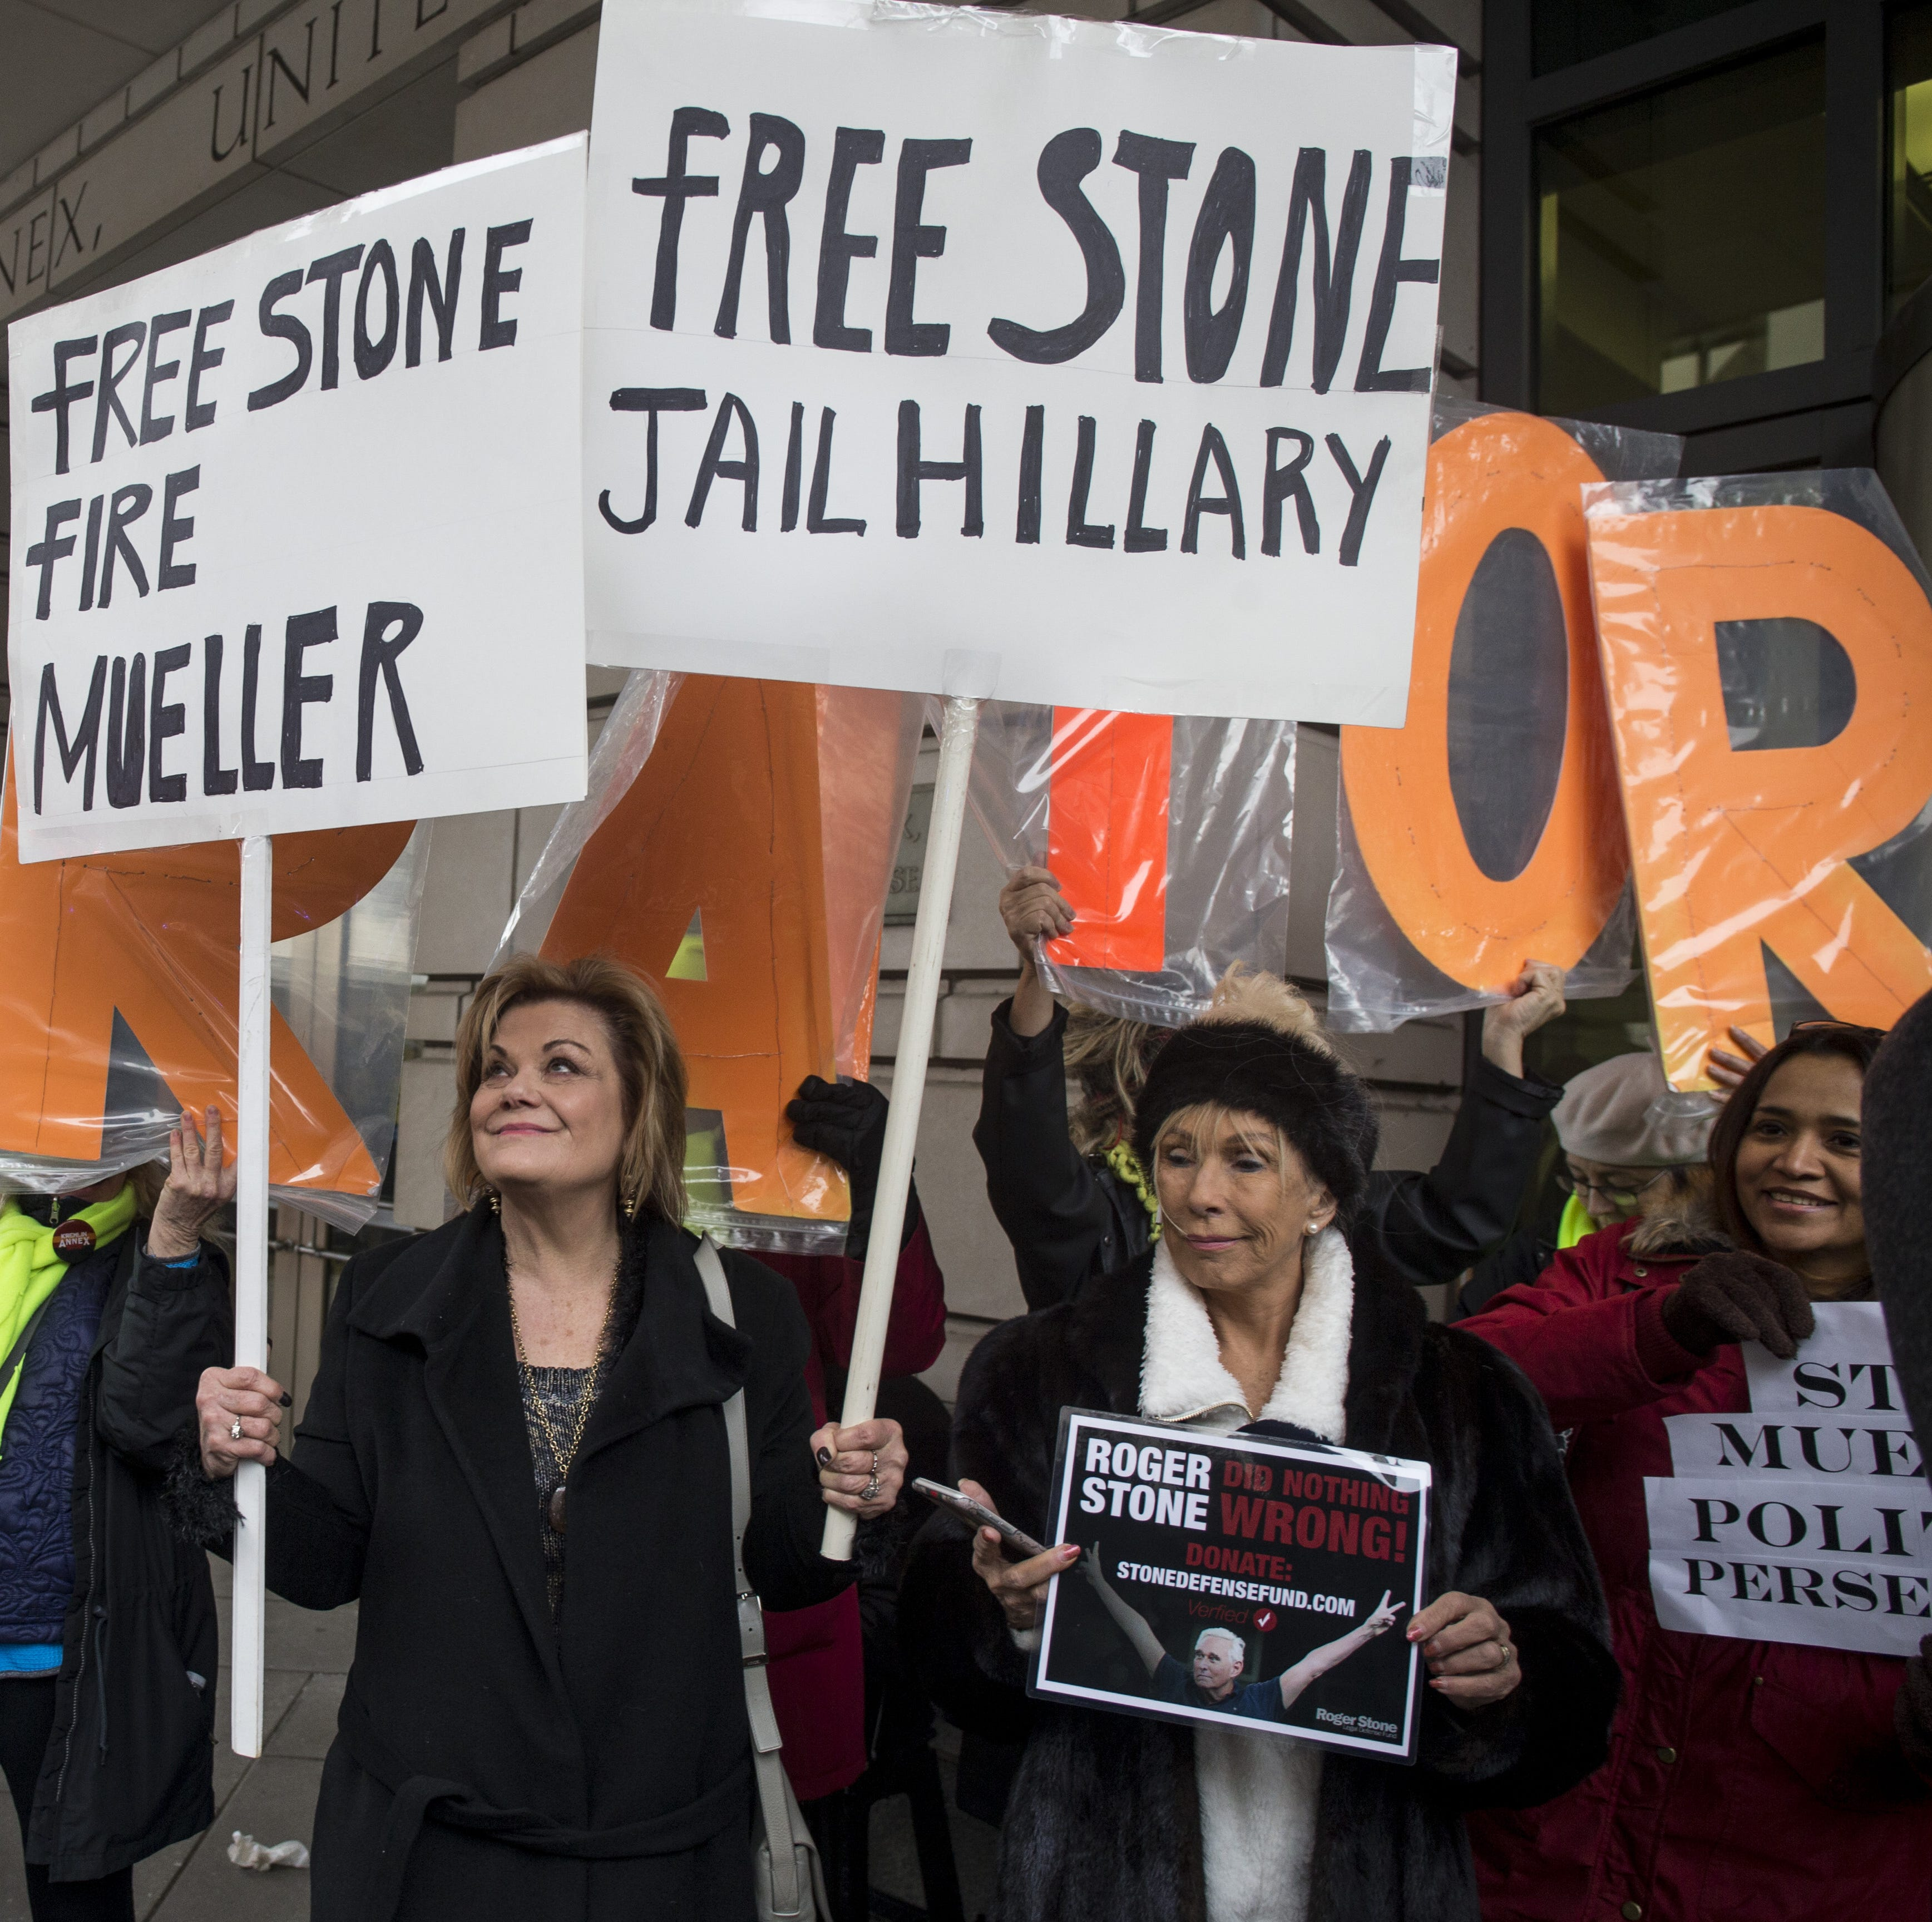 Roger Stone's not guilty plea shows collapse of Russian collusion narrative